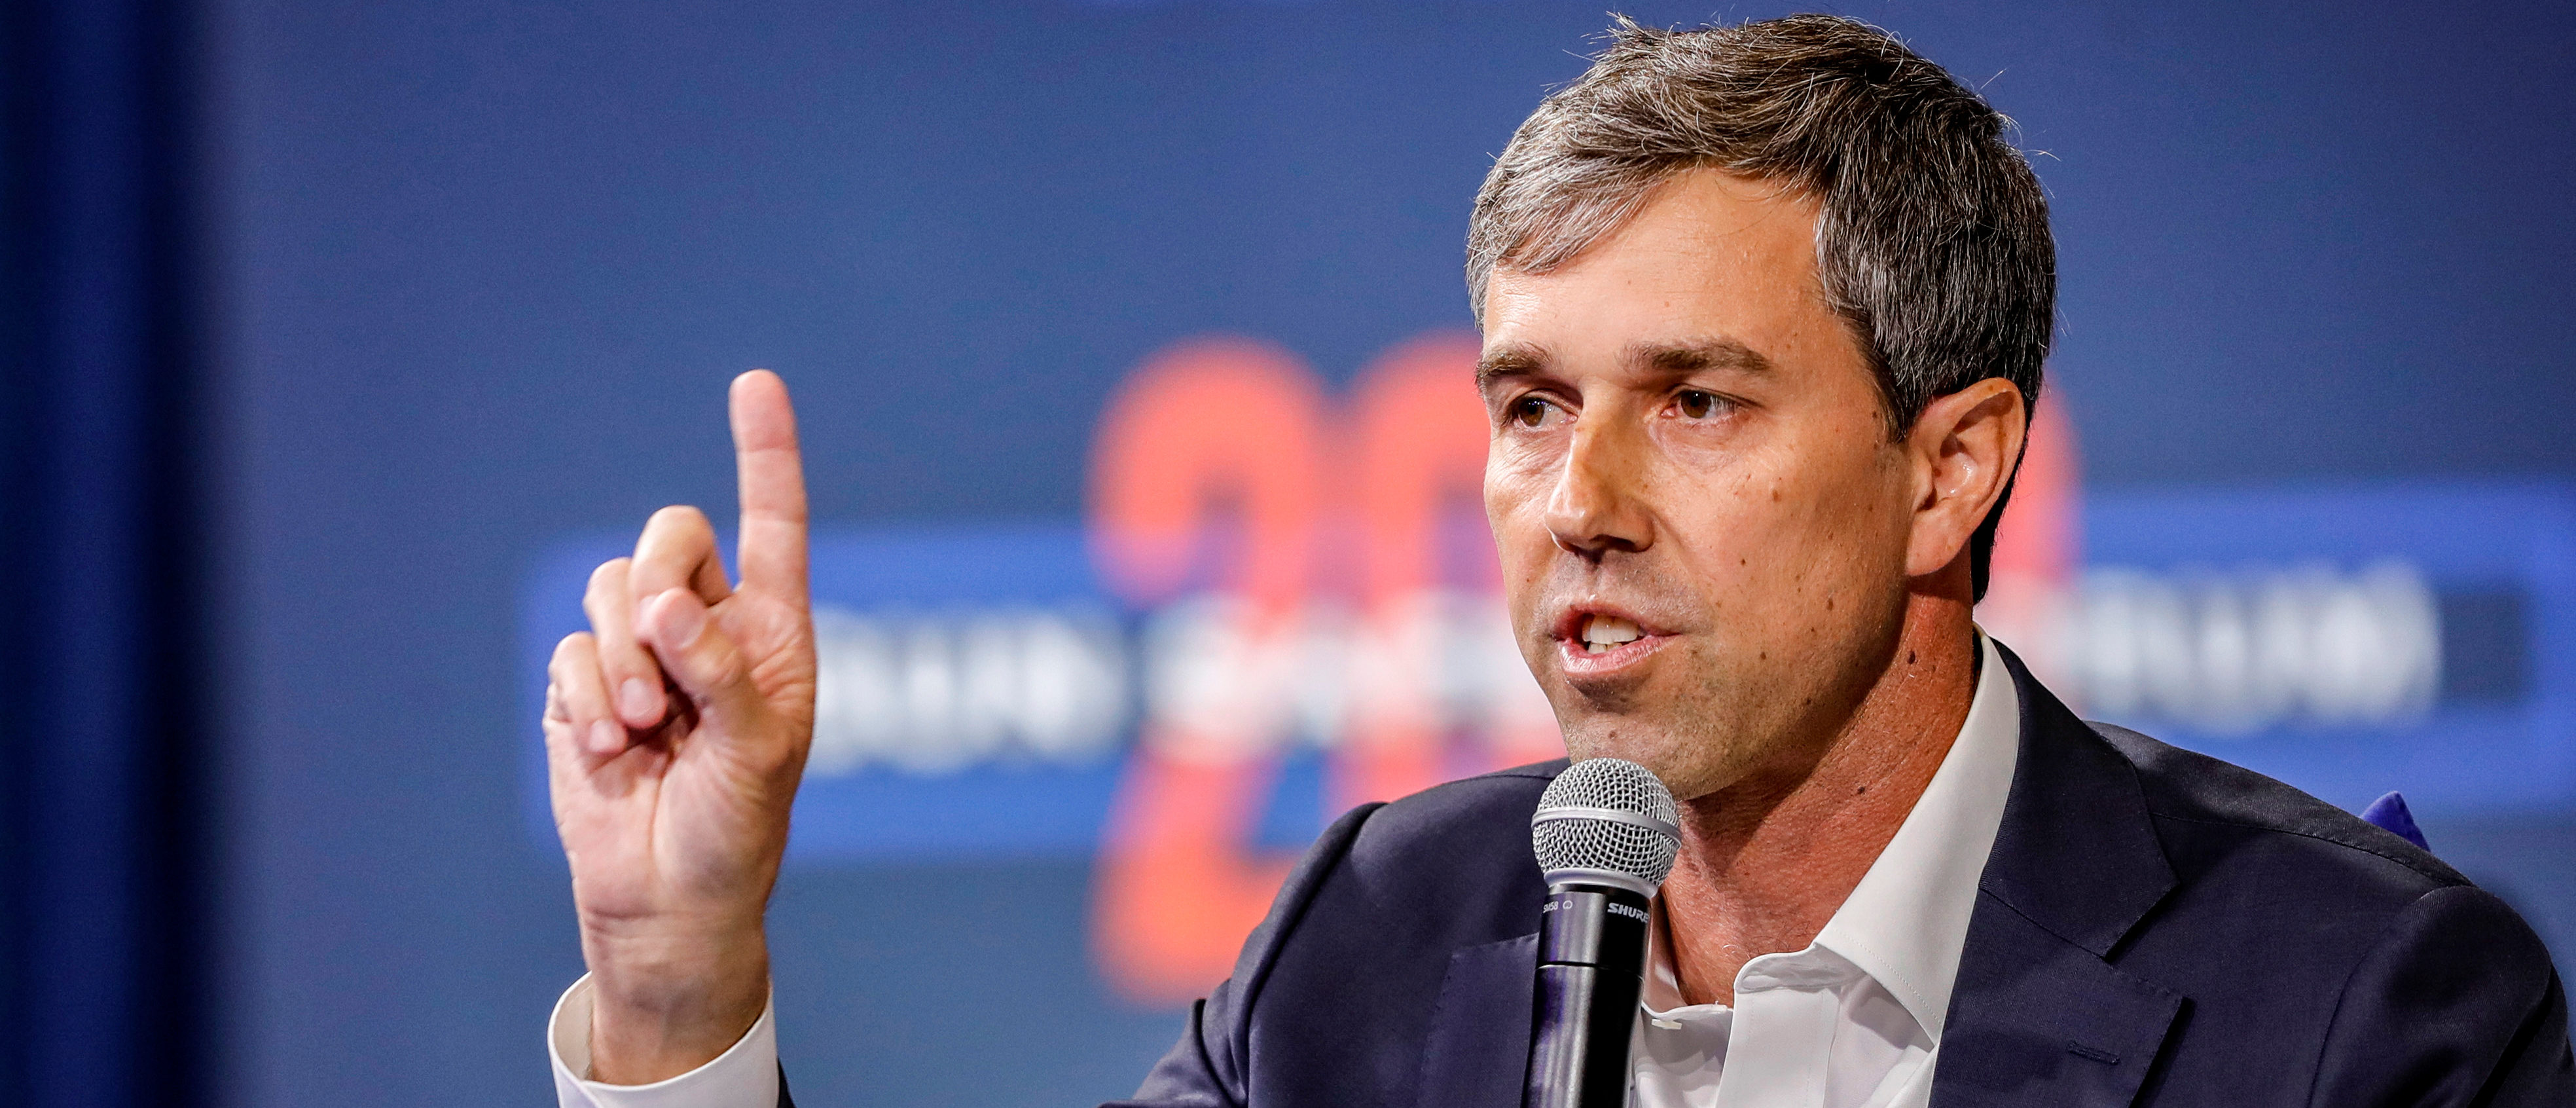 U.S. Democratic presidential candidate and former Texas Congressman Beto O'Rourke responds to a question during a forum held by gun safety organizations the Giffords group and March For Our Lives in Las Vegas, Nevada, U.S., Oct. 2, 2019. REUTERS/Steve Marcus